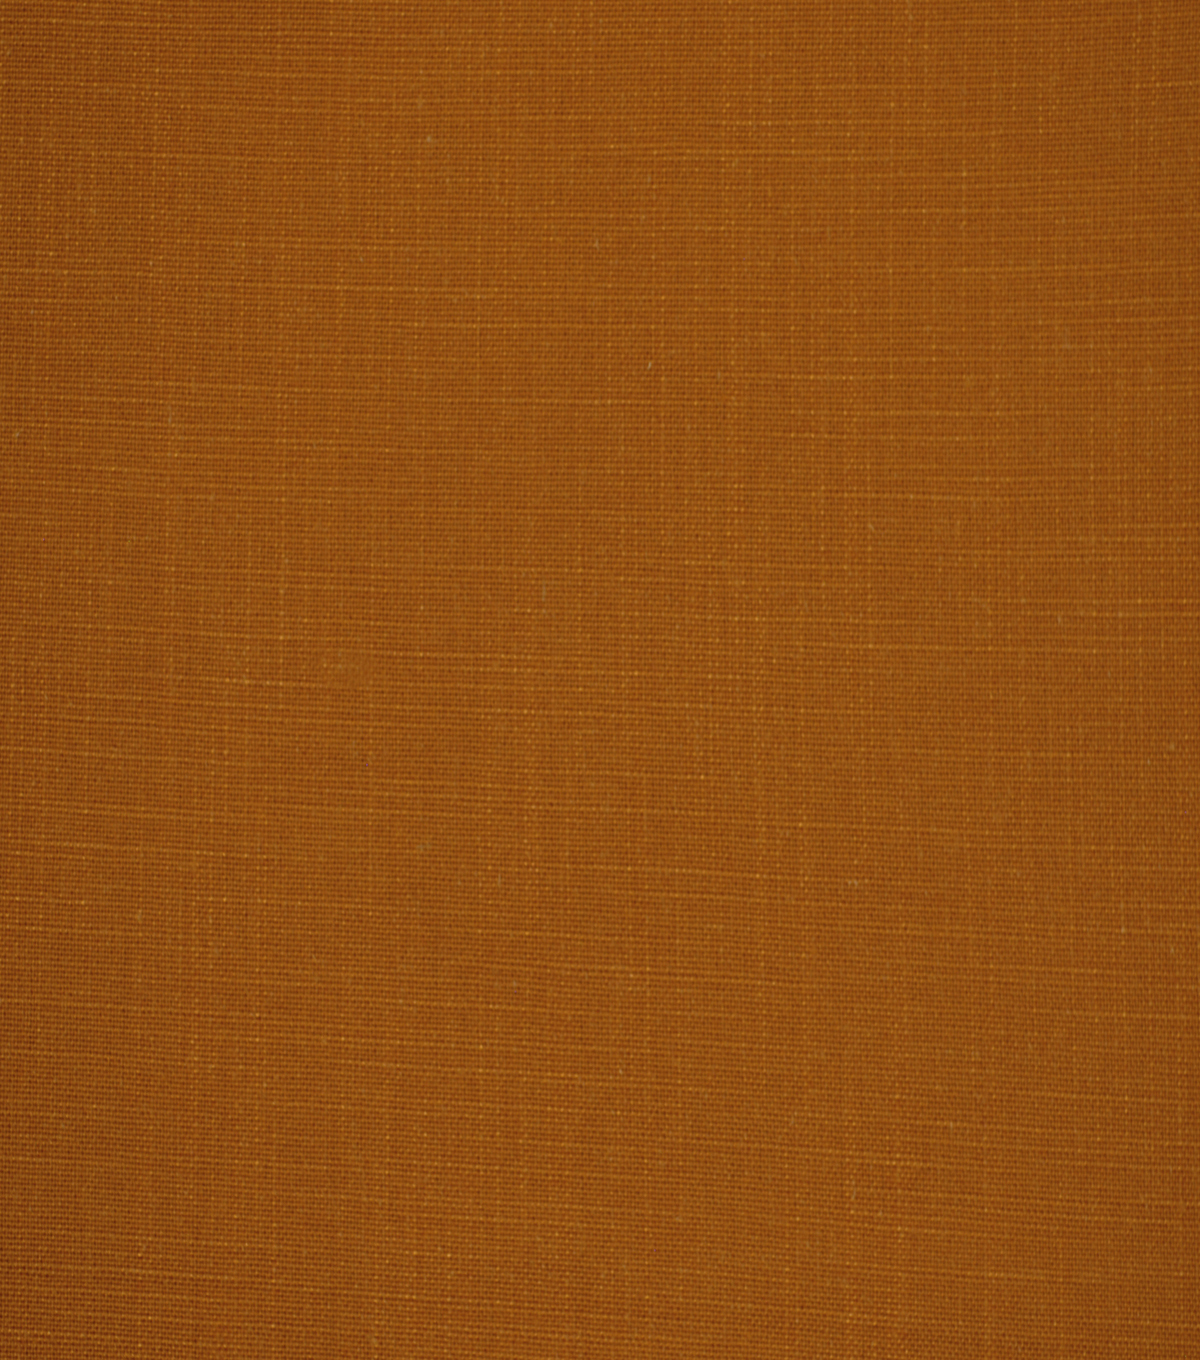 Home Decor 8\u0022x8\u0022 Fabric Swatch-Robert Allen Jaden Coral